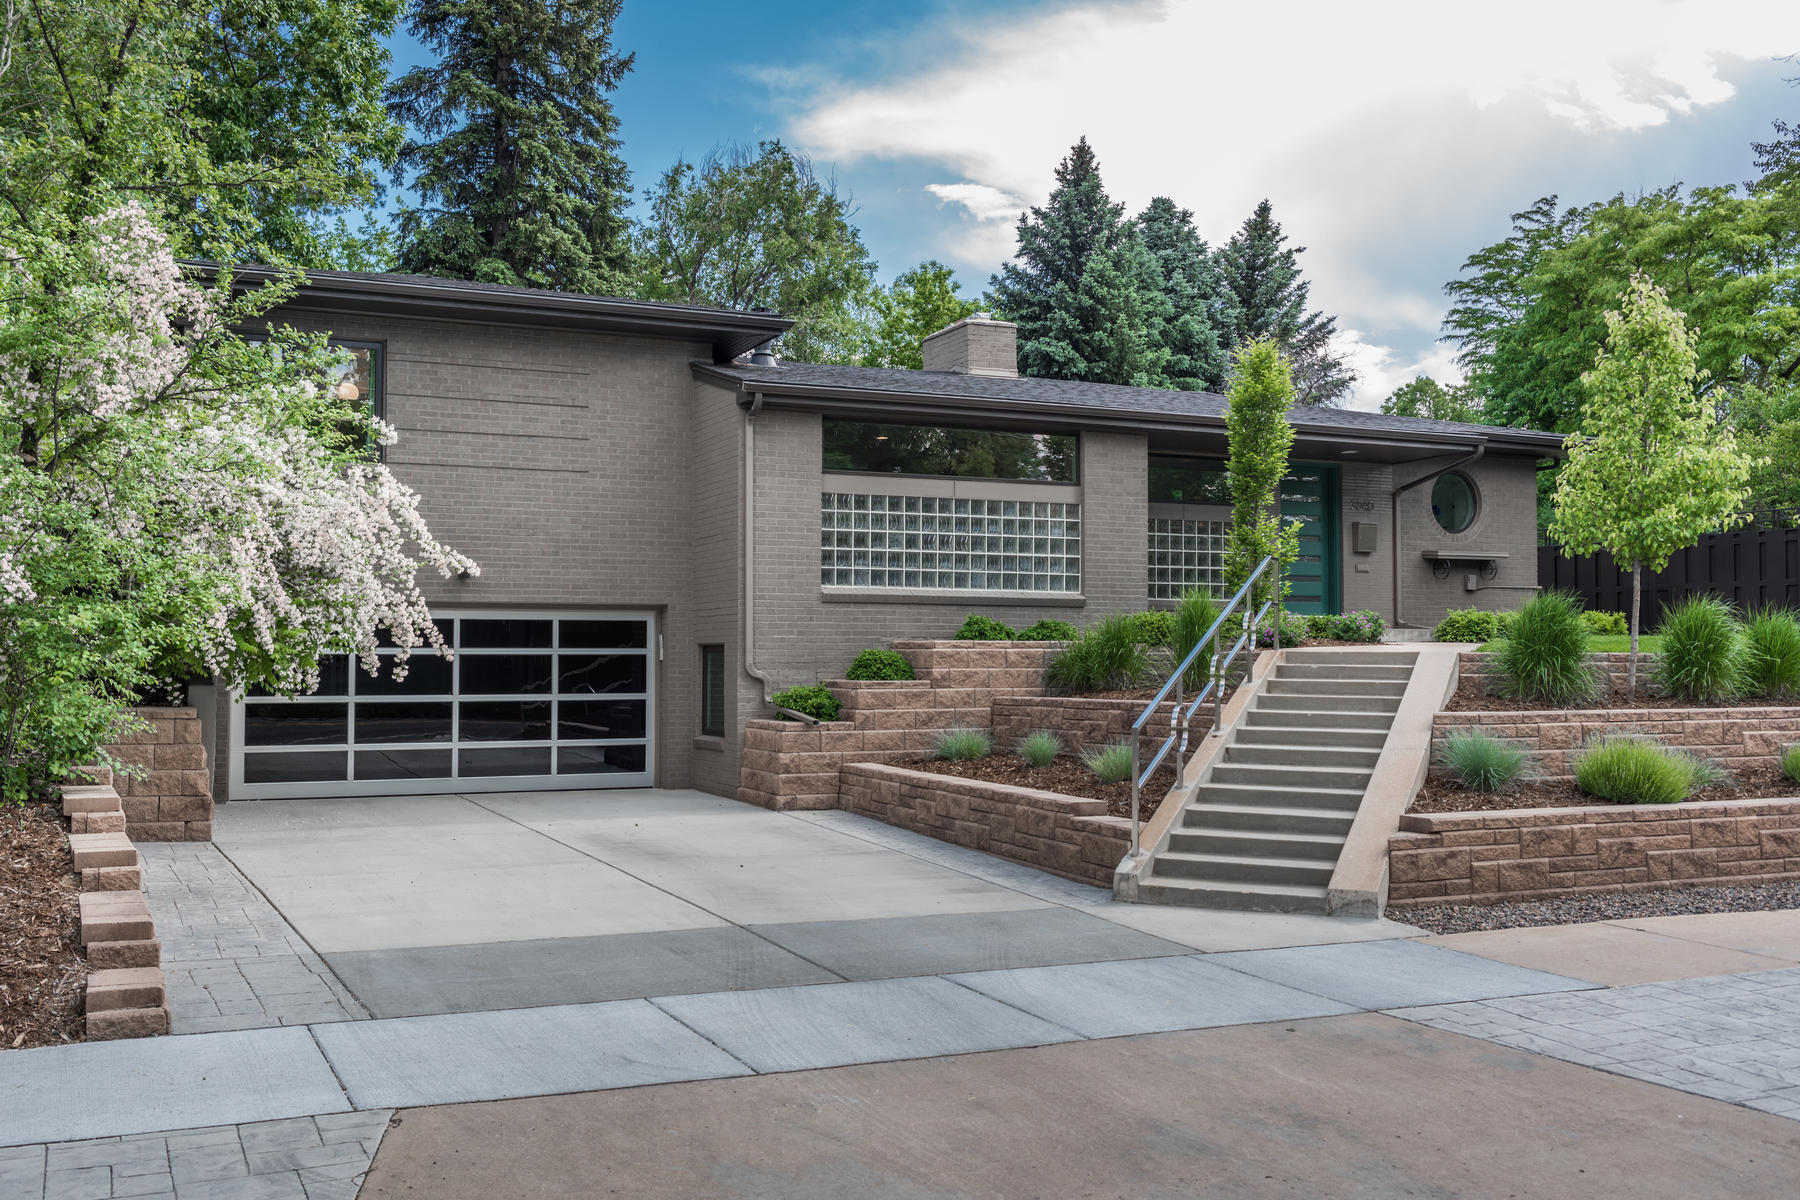 Single Family Home for Active at Tastefully Remodeled International Style Home 3040 East Exposition Avenue Denver, Colorado 80209 United States